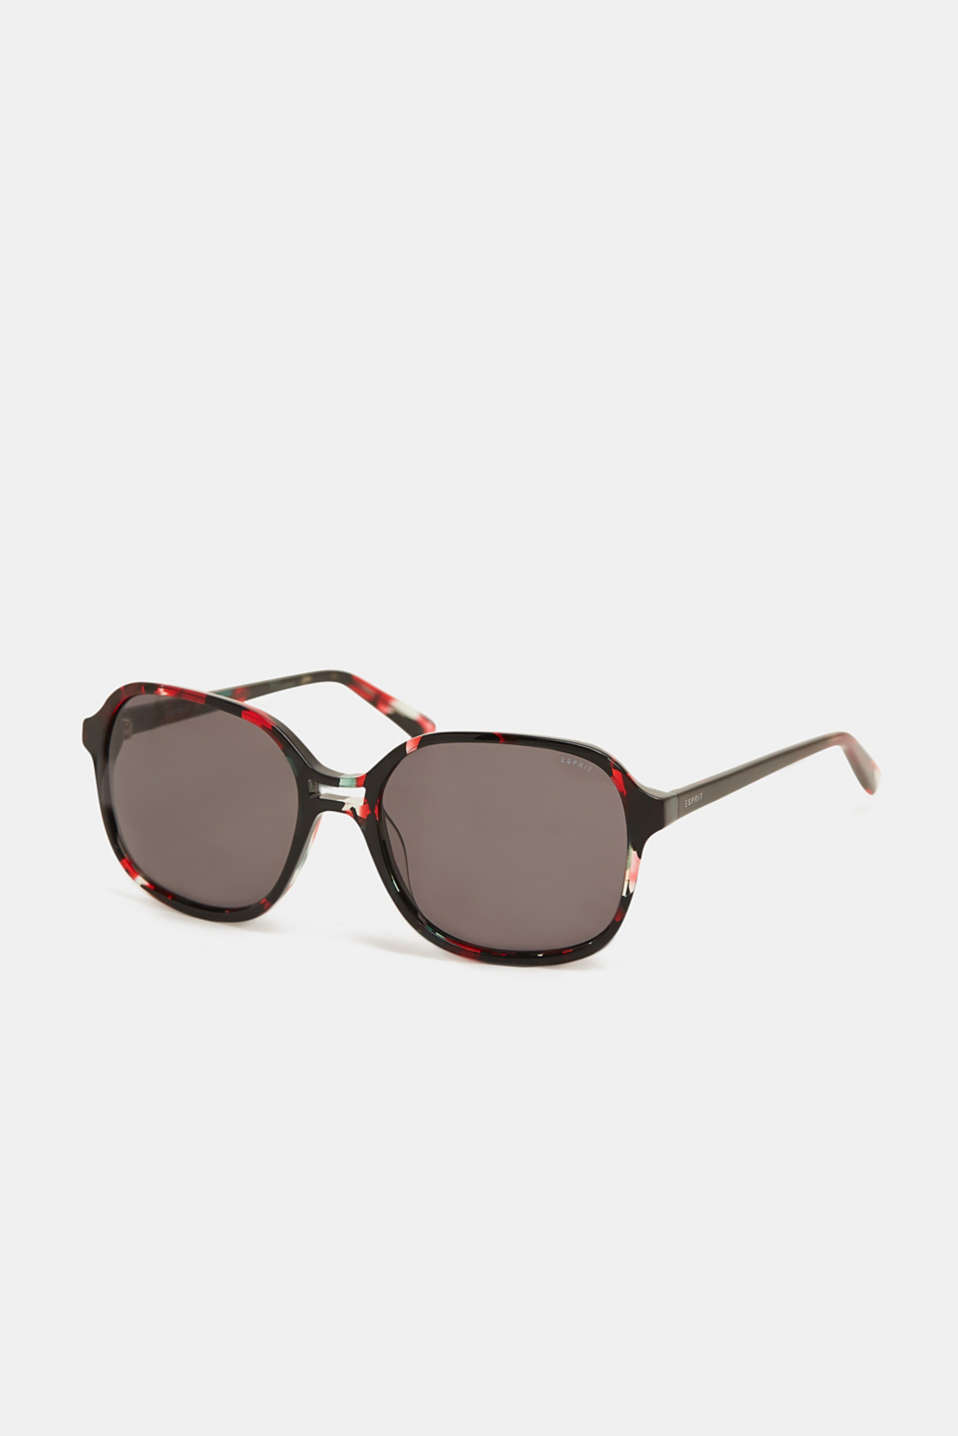 Esprit - Sunglasses with a marbled pattern